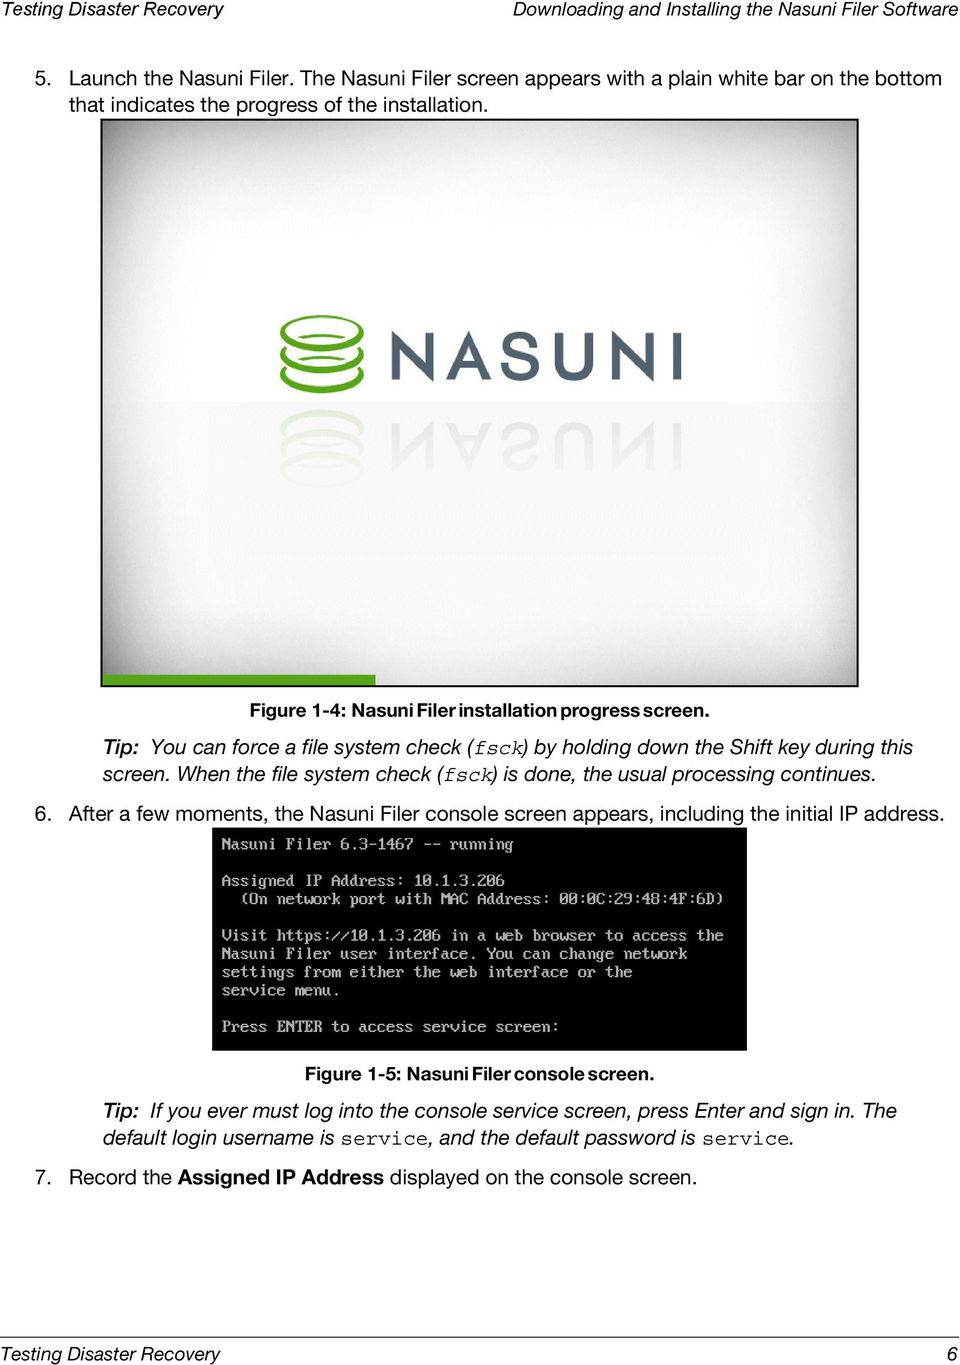 When the file system check (fsck) is done, the usual processing continues. 6. After a few moments, the Nasuni Filer console screen appears, including the initial IP address.